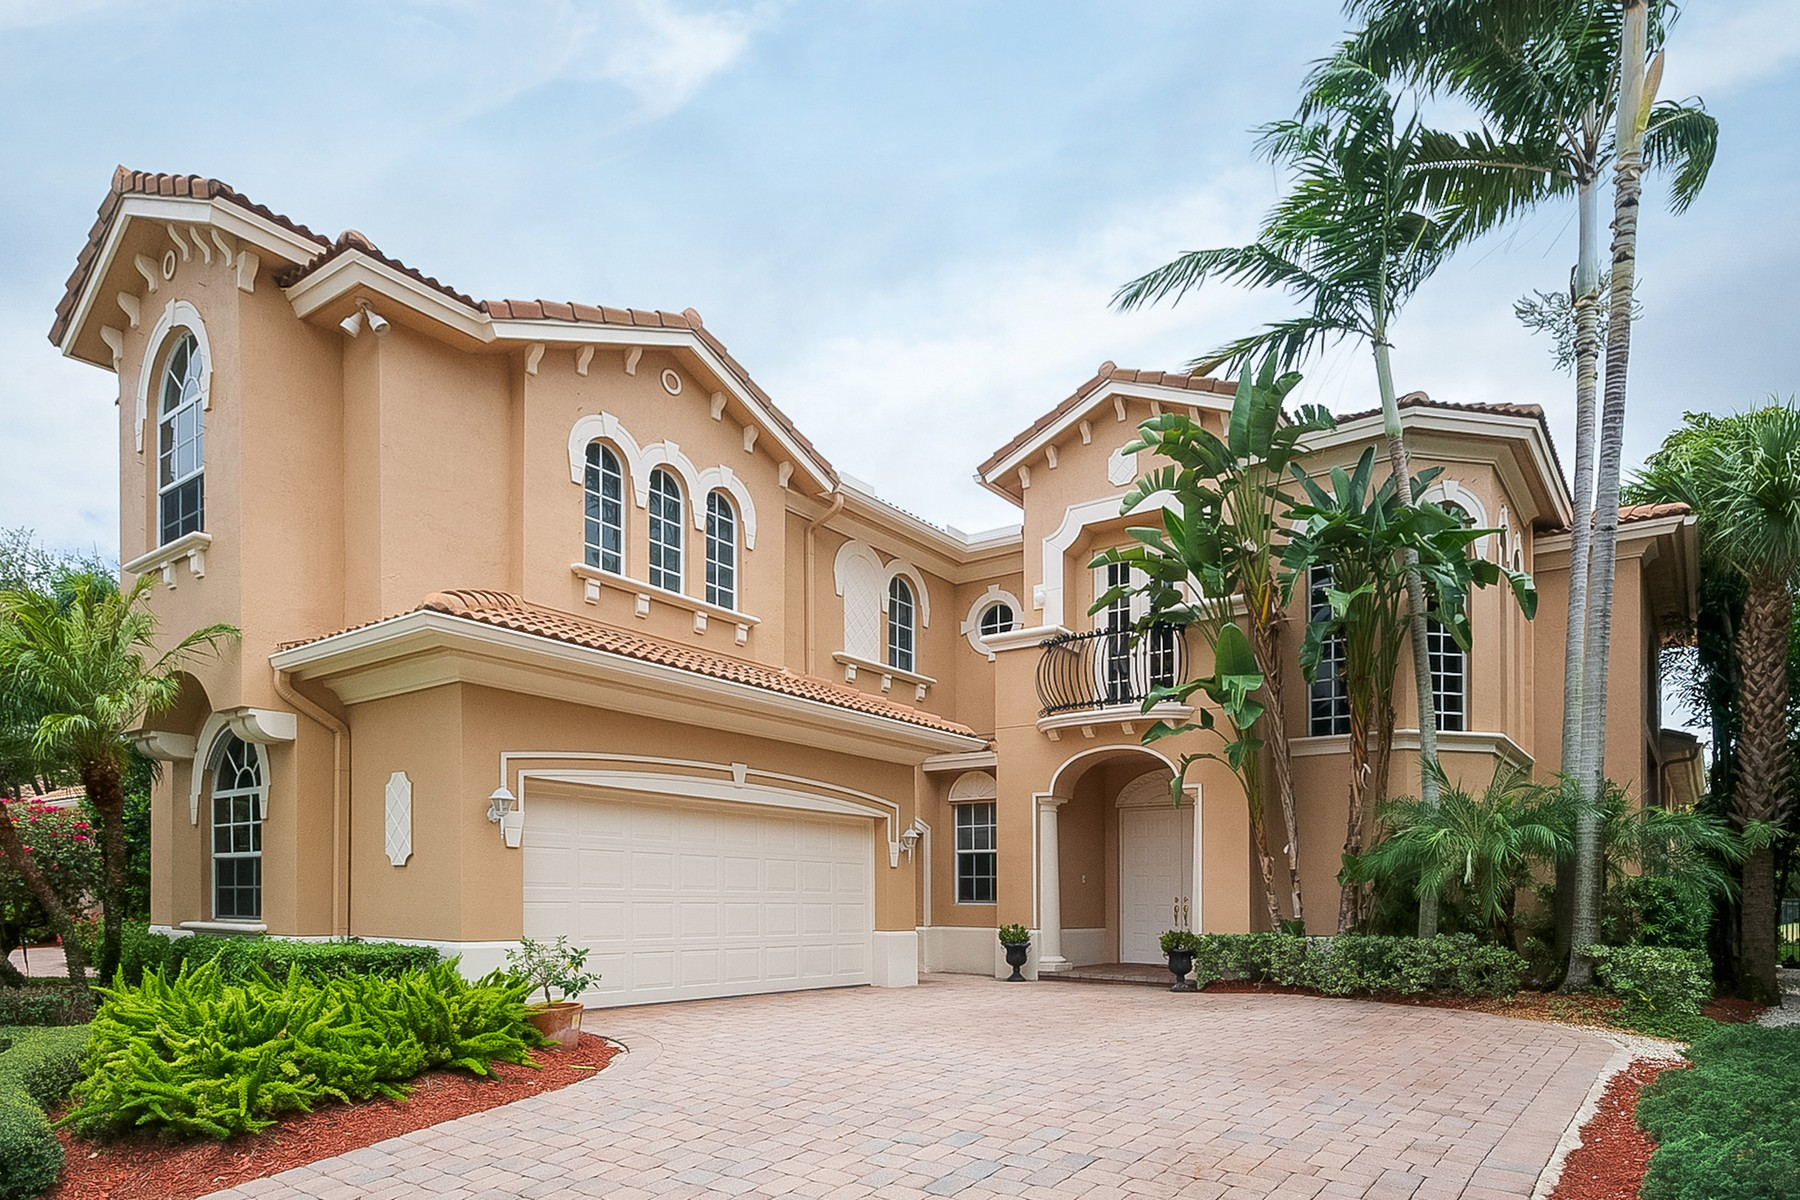 Single Family Home for Sale at 8173 Valhalla Dr , Delray Beach, FL 33446 8173 Valhalla Dr Delray Beach, Florida 33446 United States